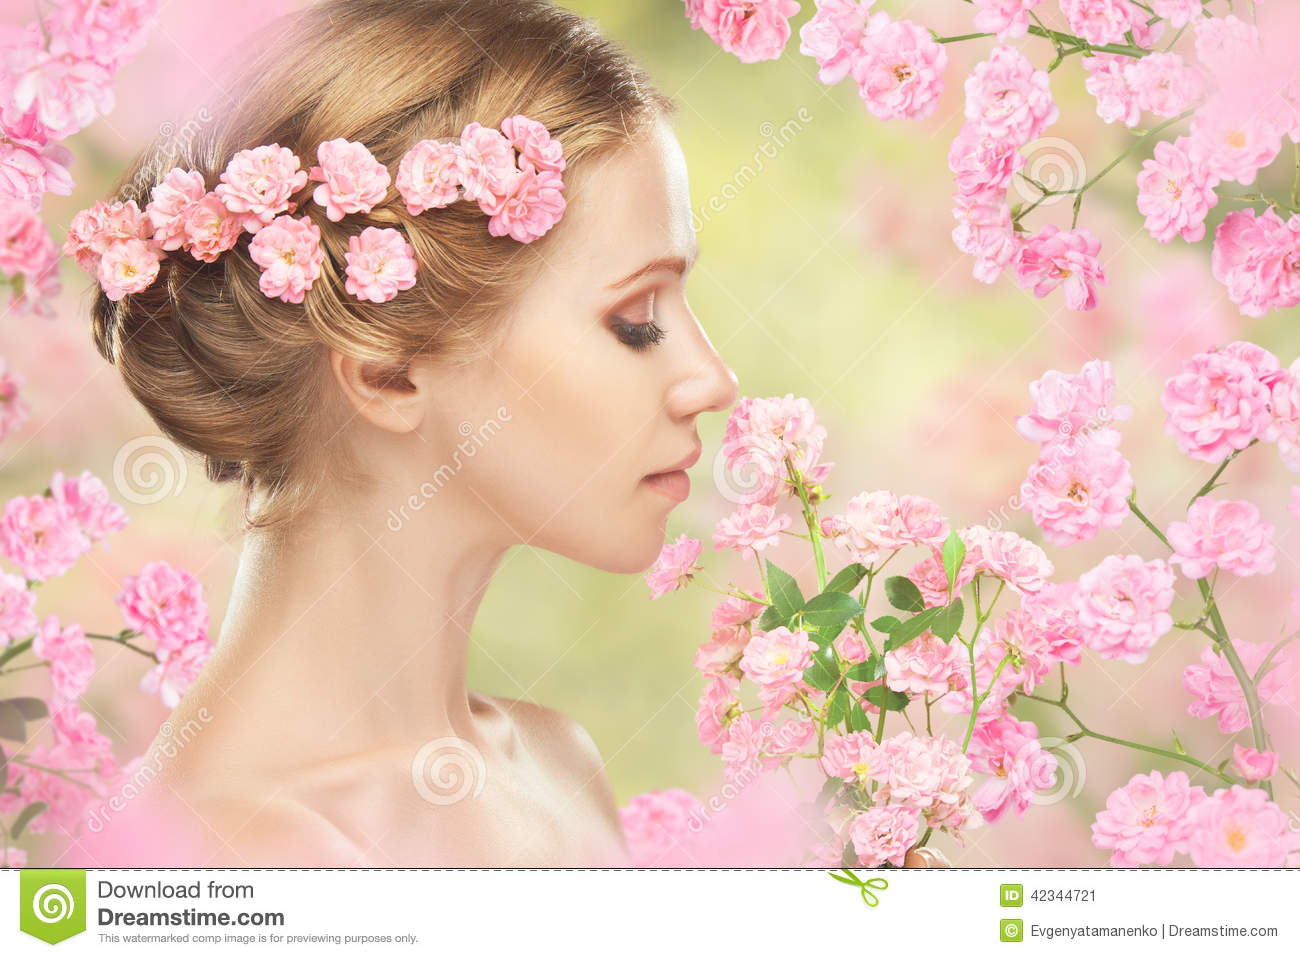 Face of young beautiful woman with pink flowers in her hair